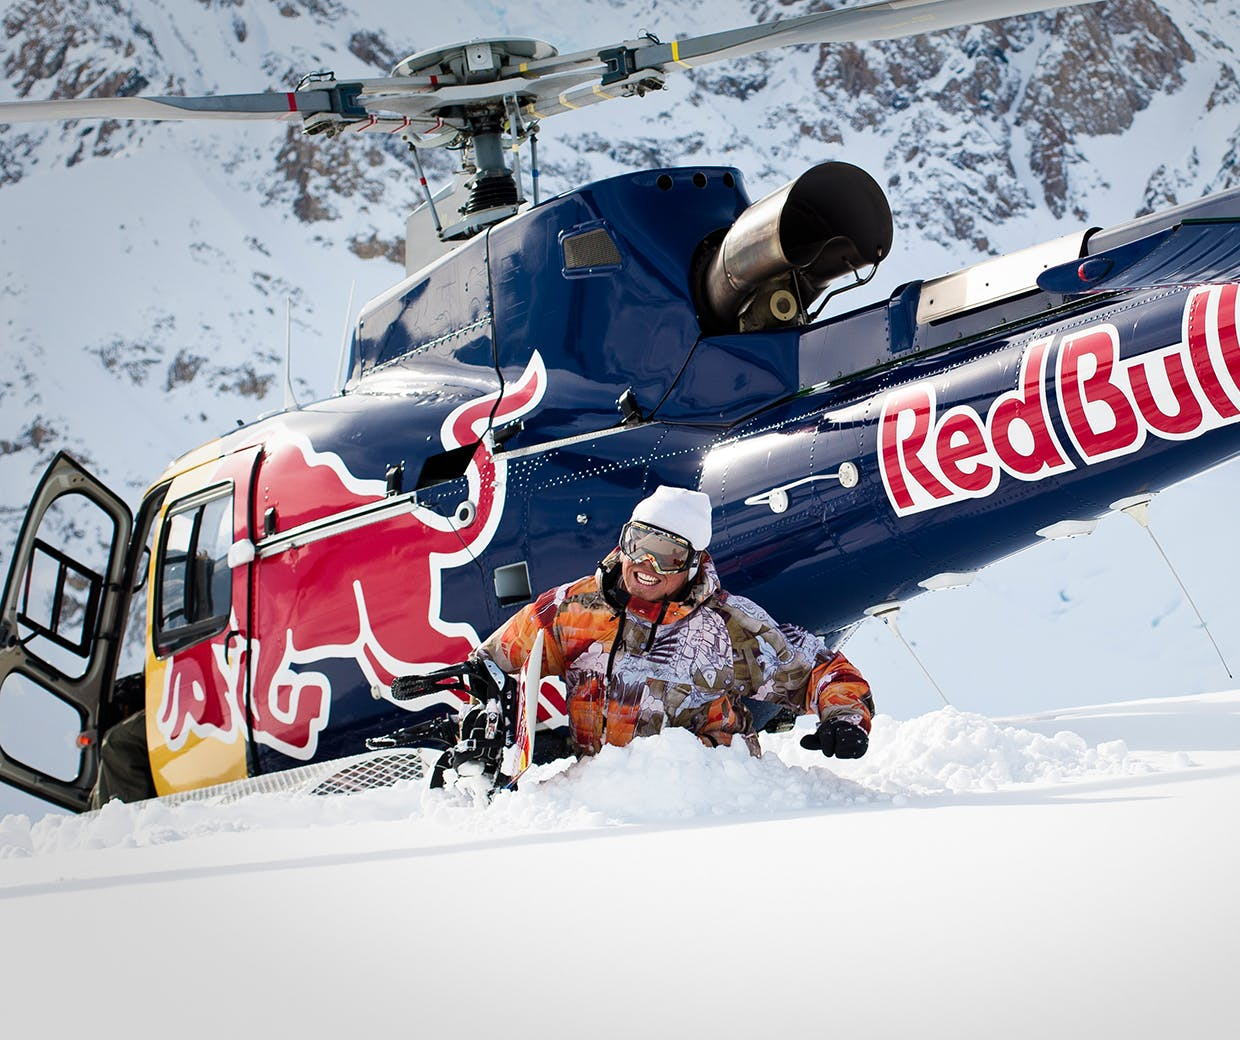 Travis Rice, Red Bull, Alaska